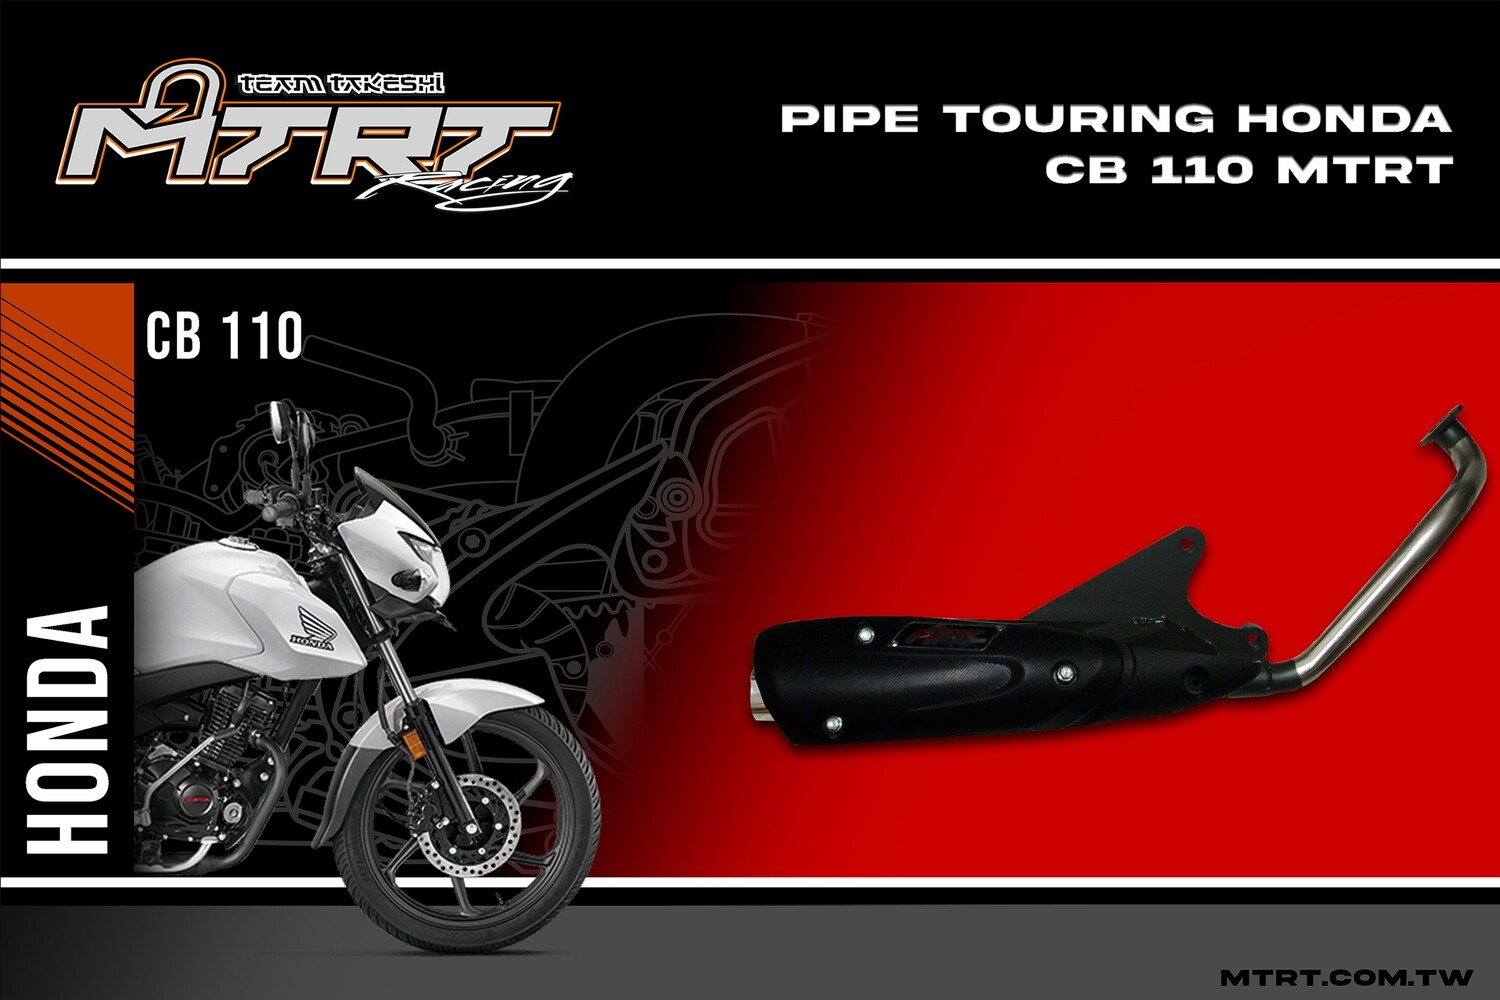 PIPE TOURING honda CB110